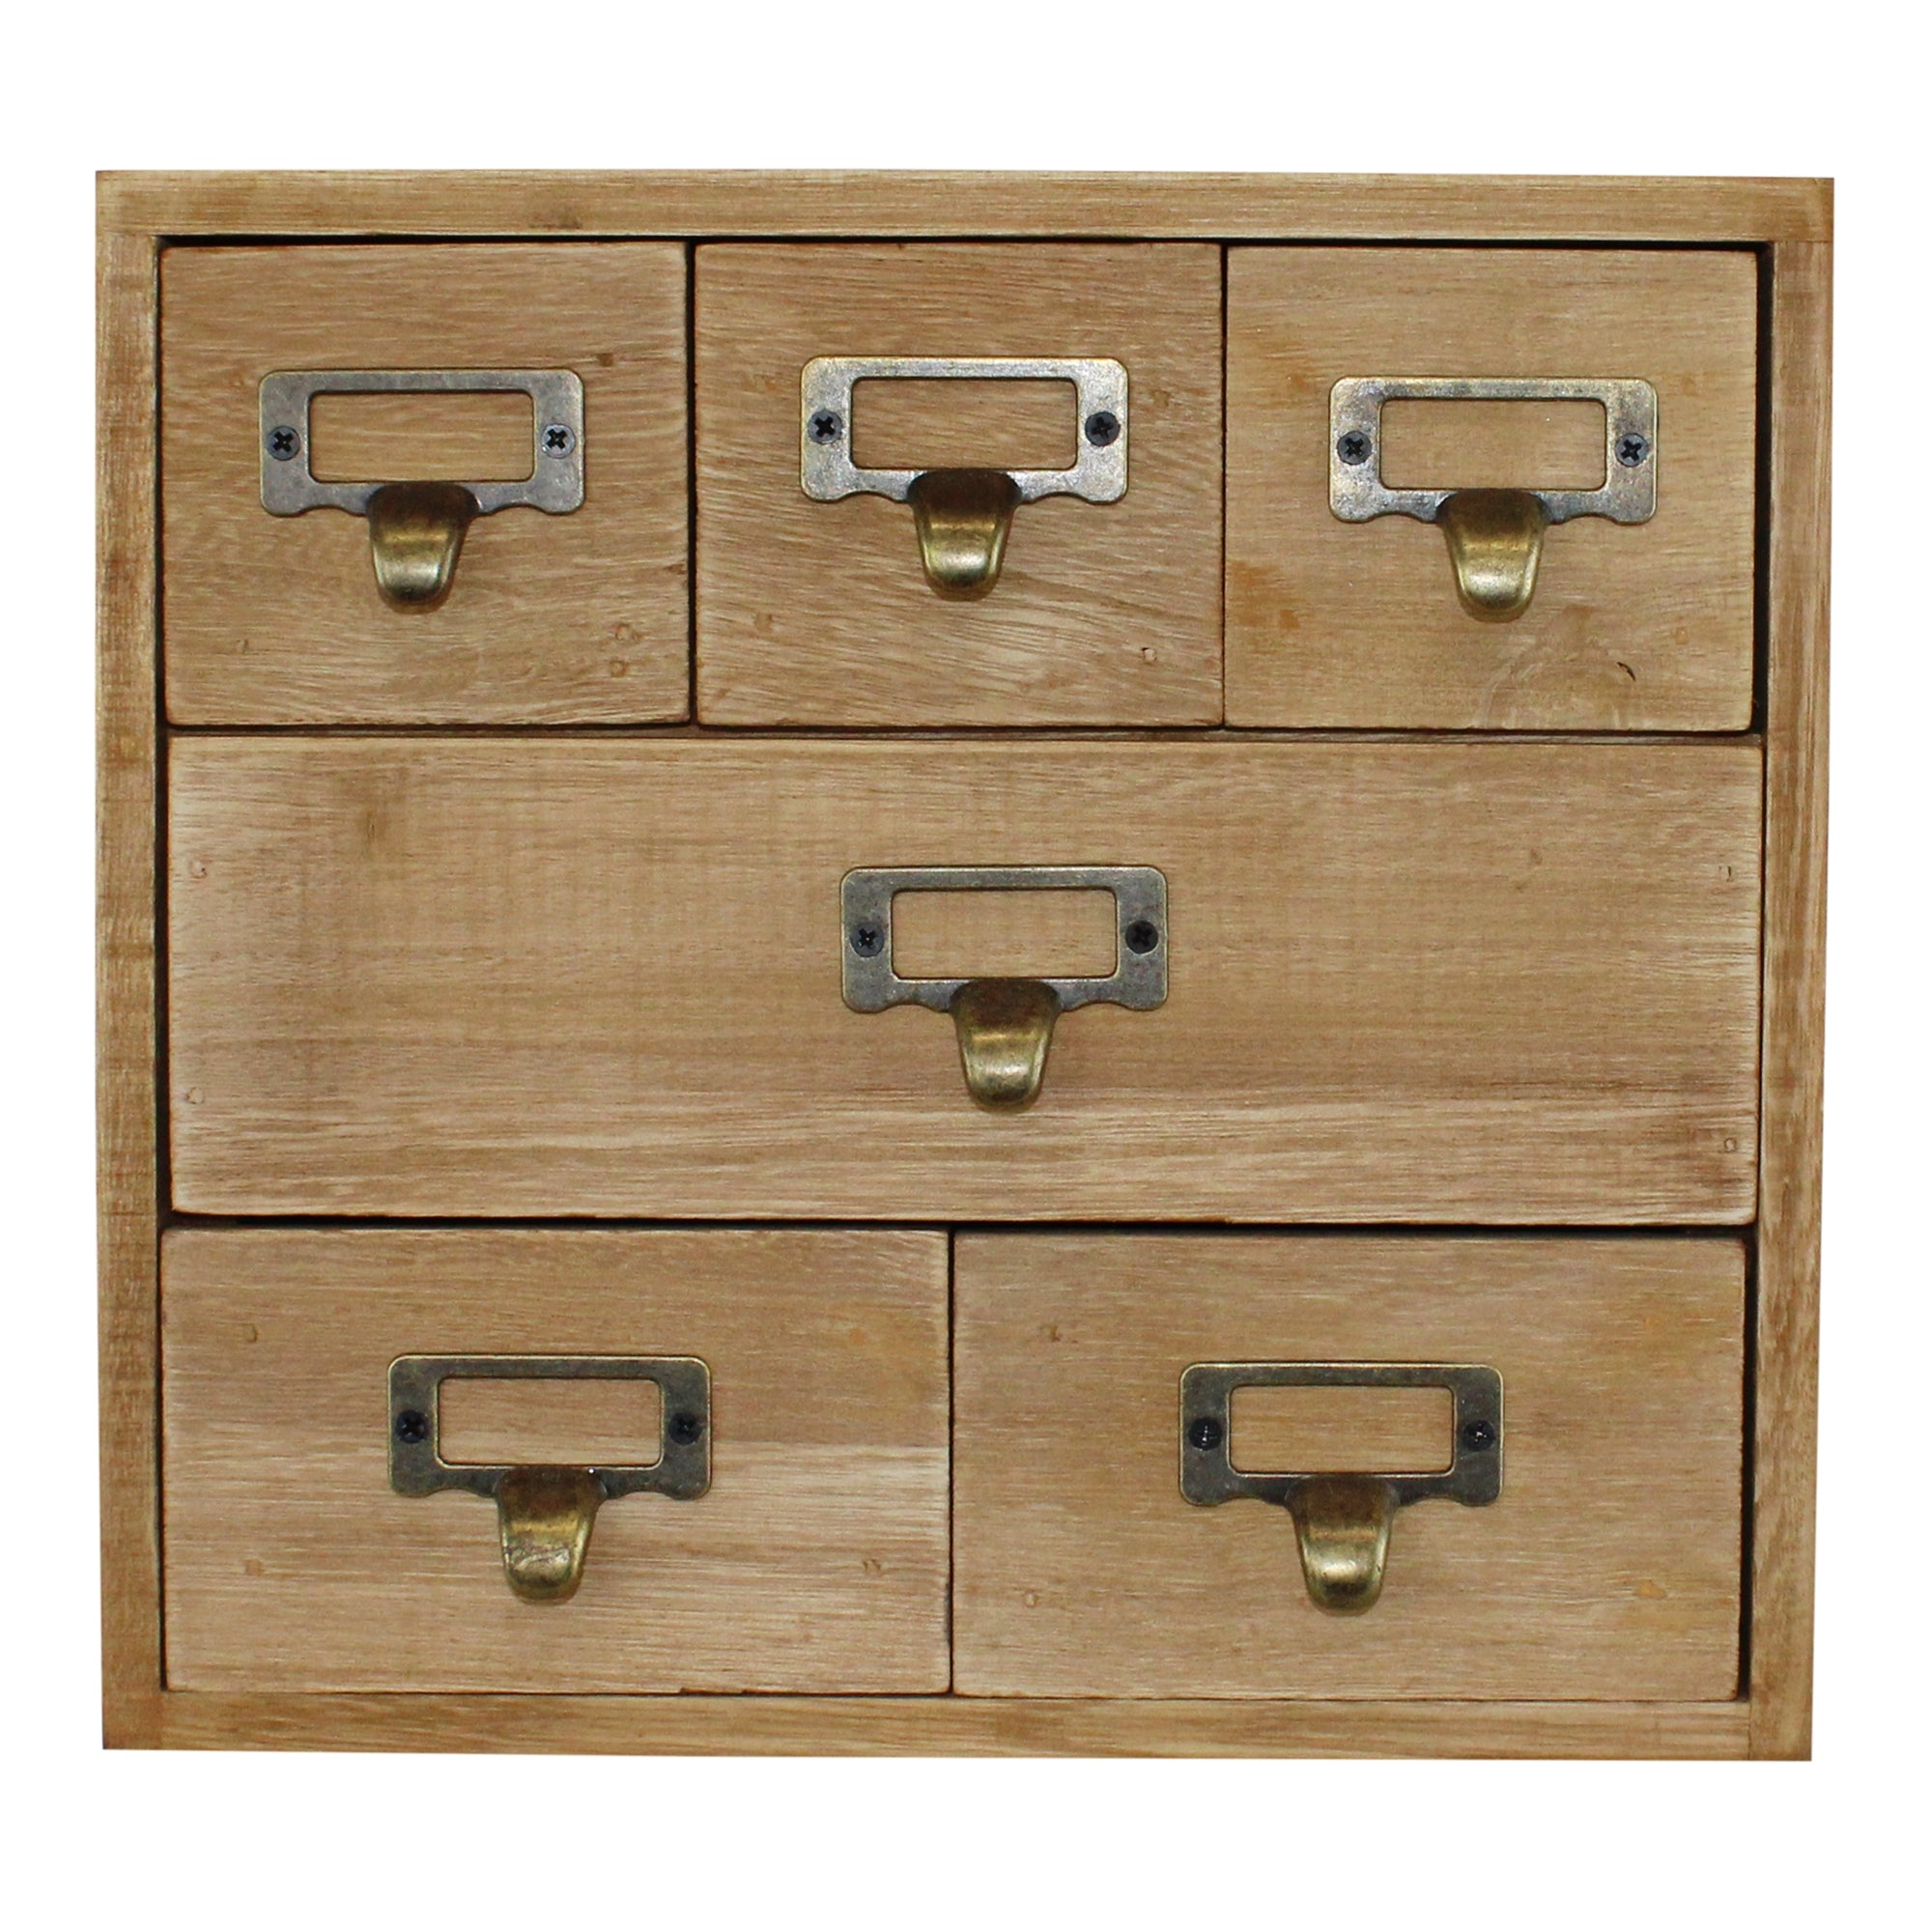 6 Drawer Storage Unit, Trinket Drawers